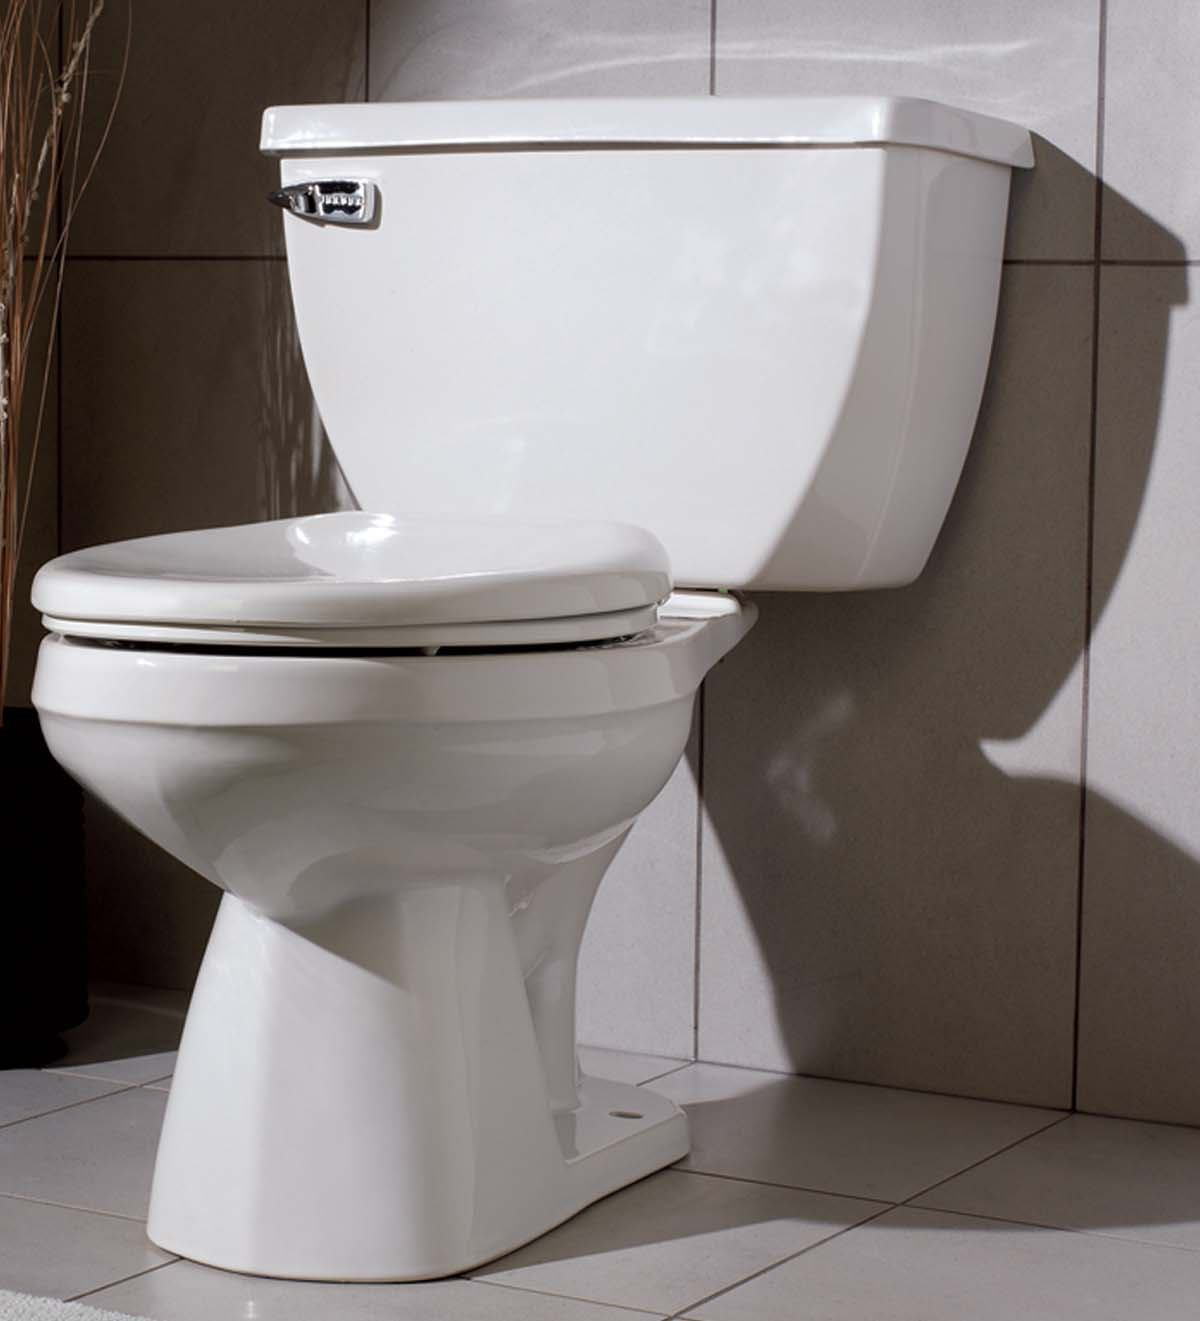 Ultra flush 1 6 gpf toilet from gerber architect for Gerbiere toit